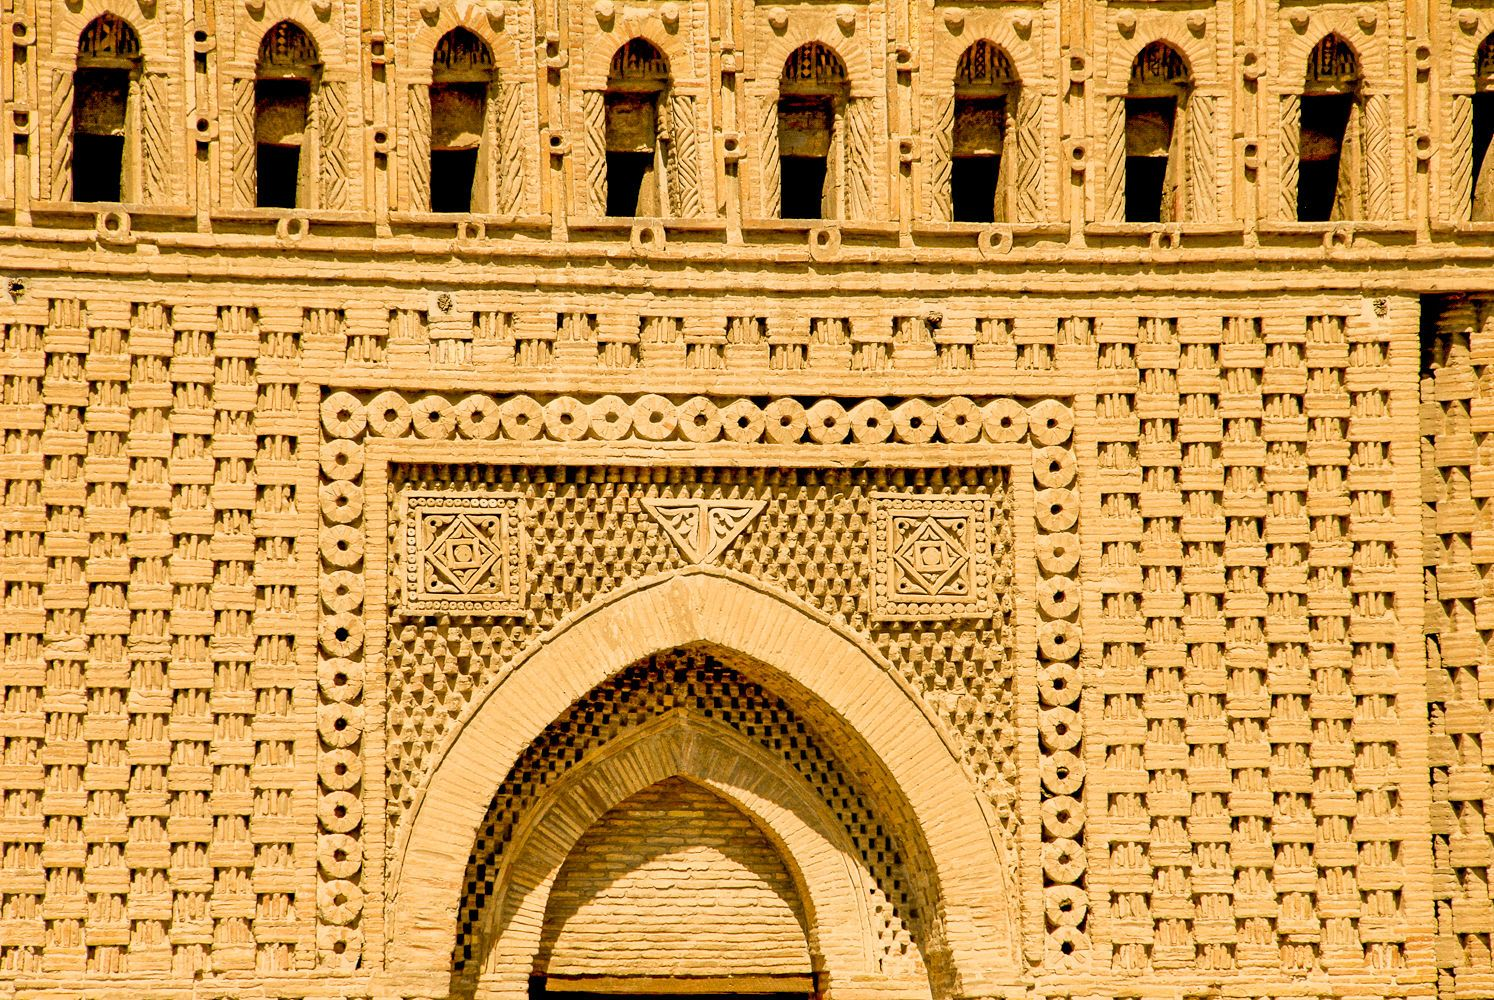 detailed brickwork on samanid mausoleum in Bukhara, Uzbekistan travel